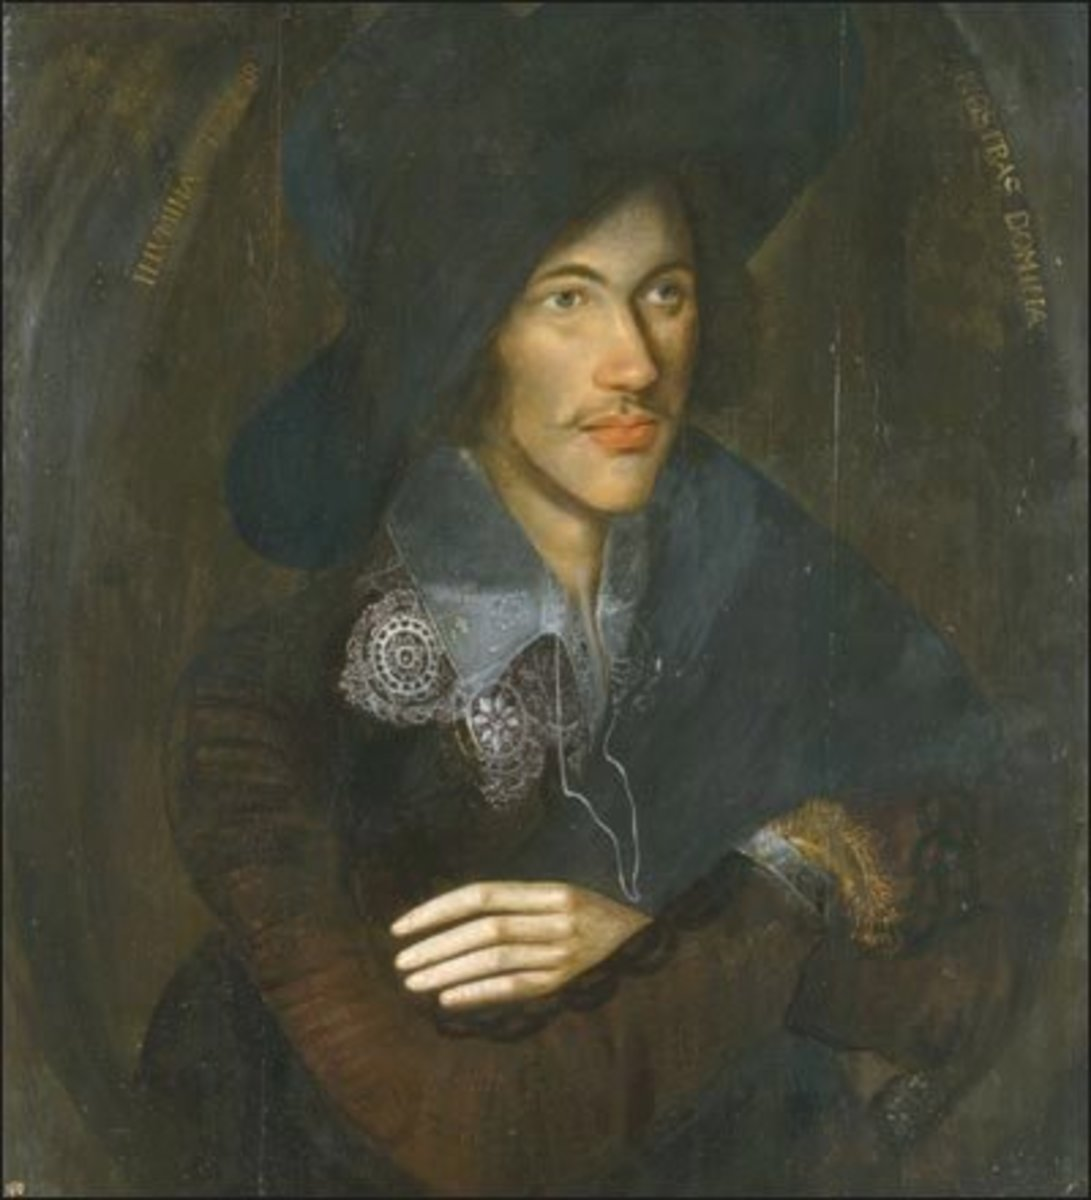 Analysis of Poem The Good-Morrow by John Donne